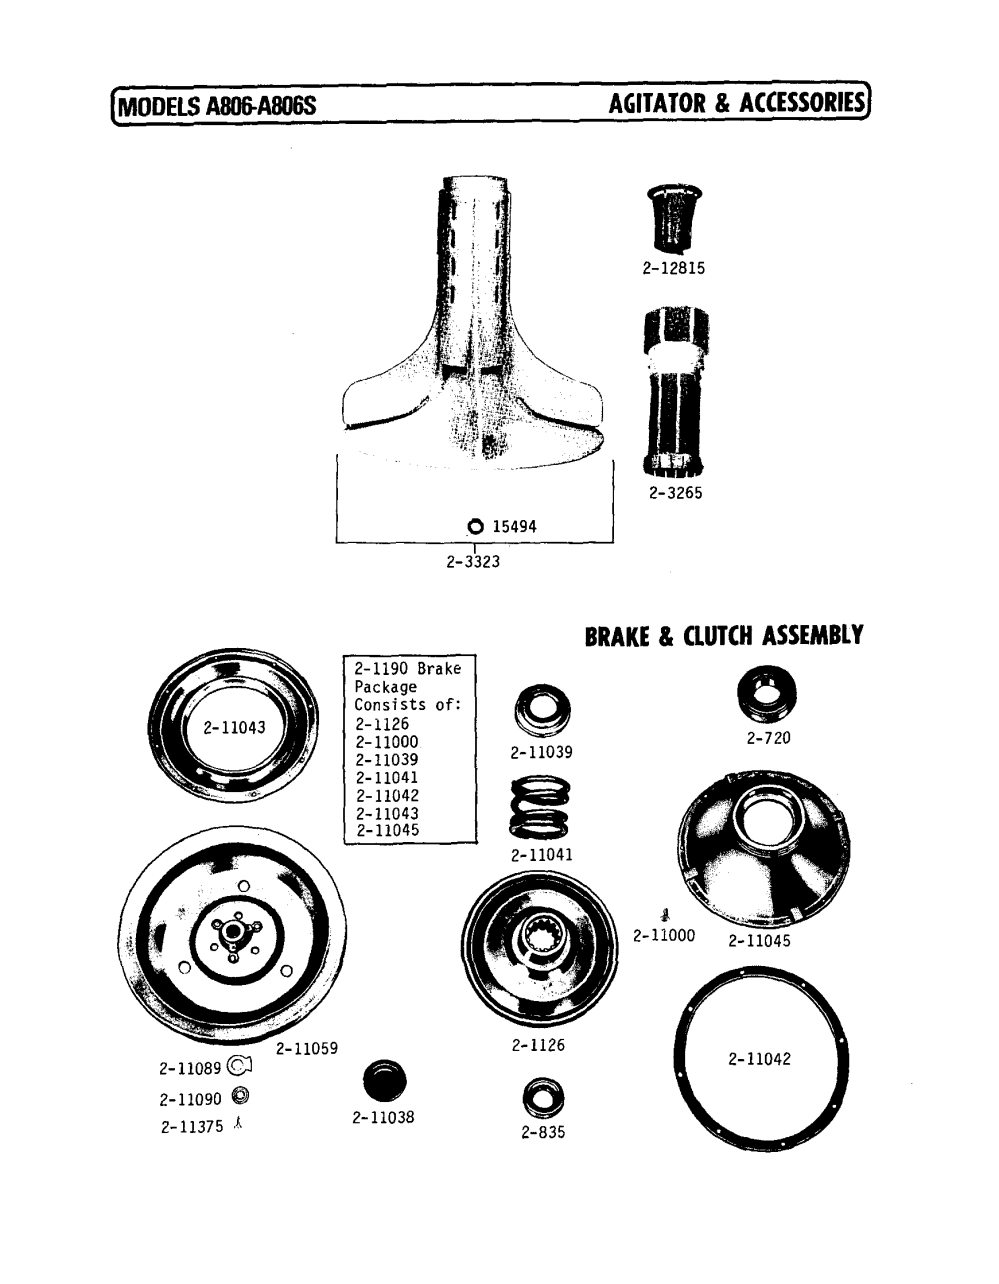 medium resolution of a806 washer agitator and accessories parts diagram